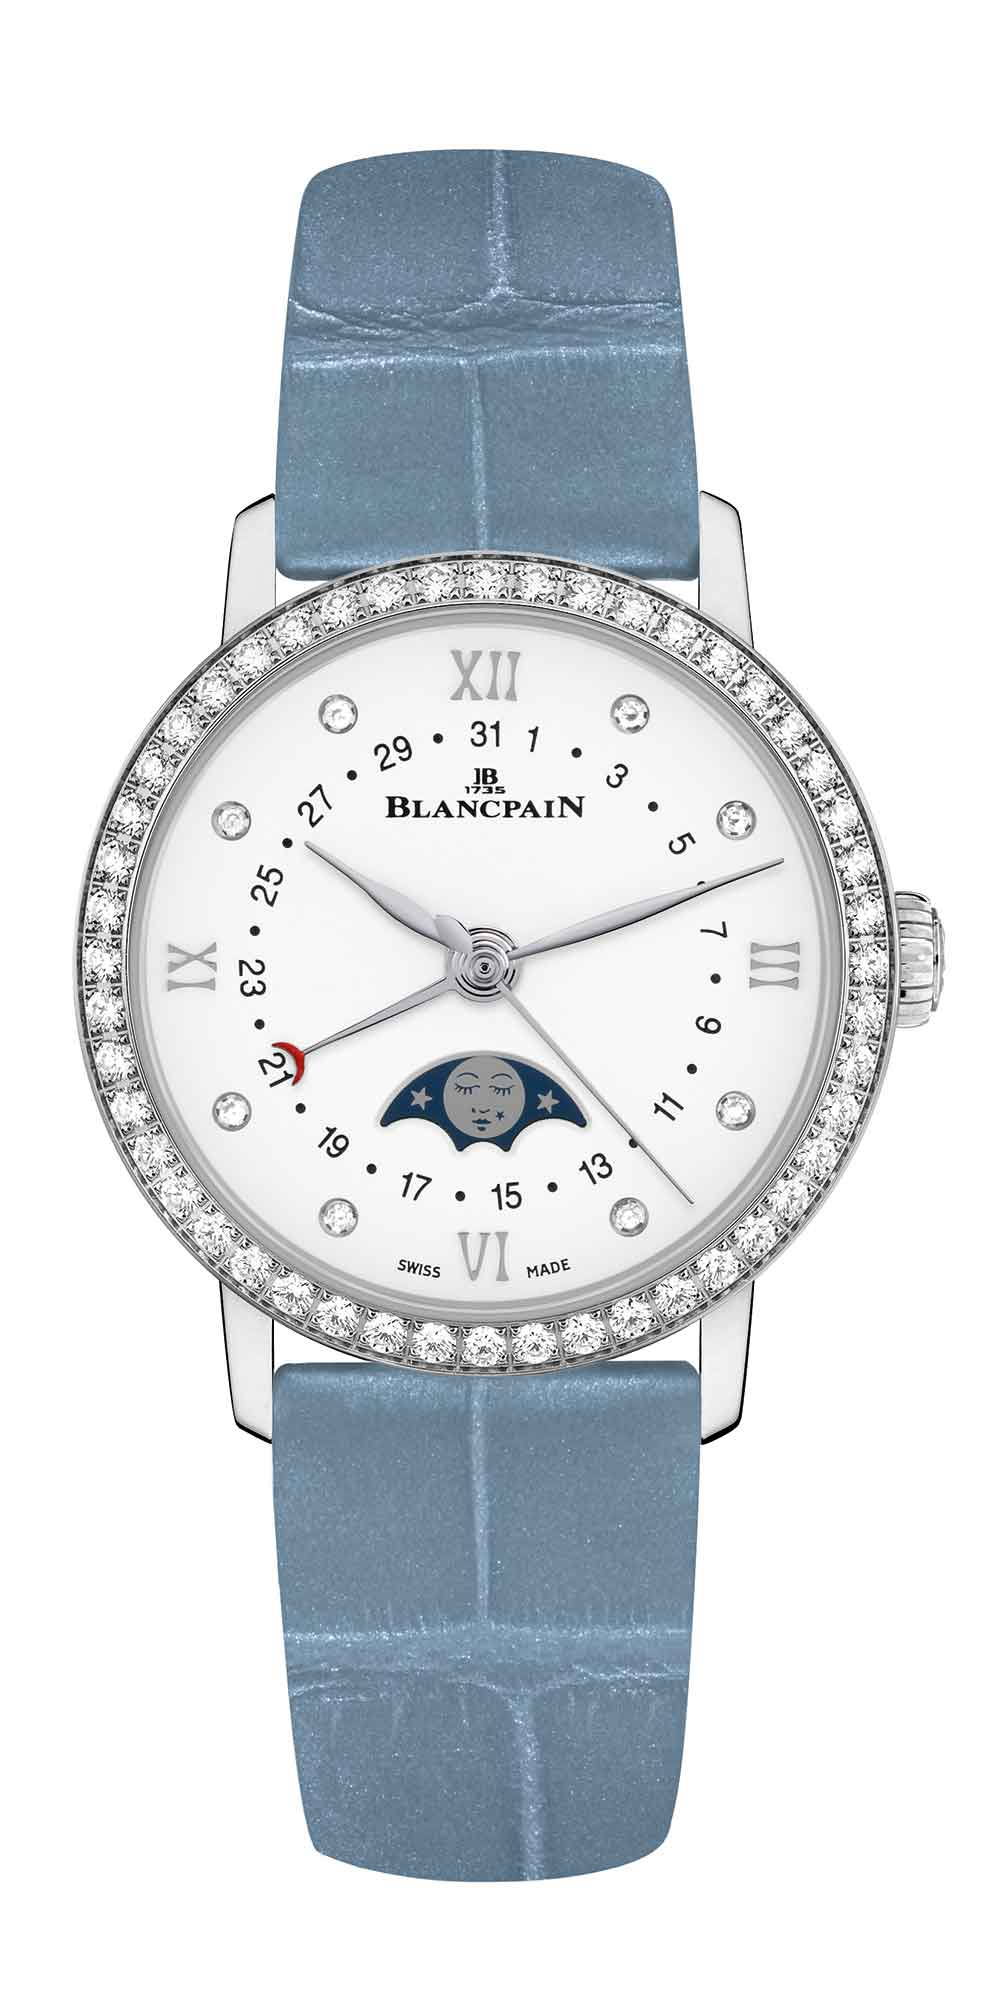 Blancpain Date Moon Phases